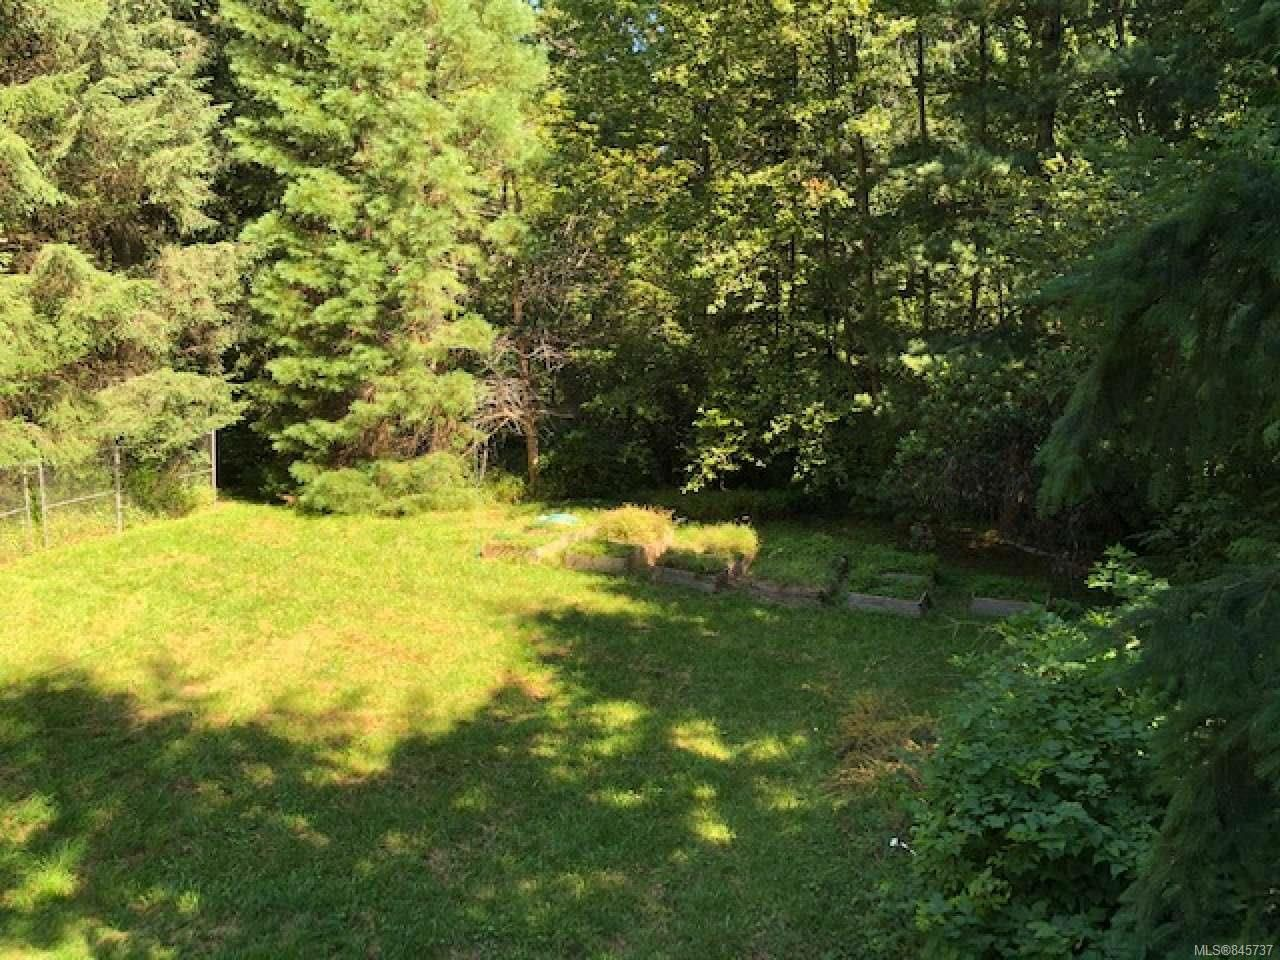 Photo 9: Photos: 3125 Rinvold Rd in QUALICUM BEACH: PQ Errington/Coombs/Hilliers House for sale (Parksville/Qualicum)  : MLS®# 845737